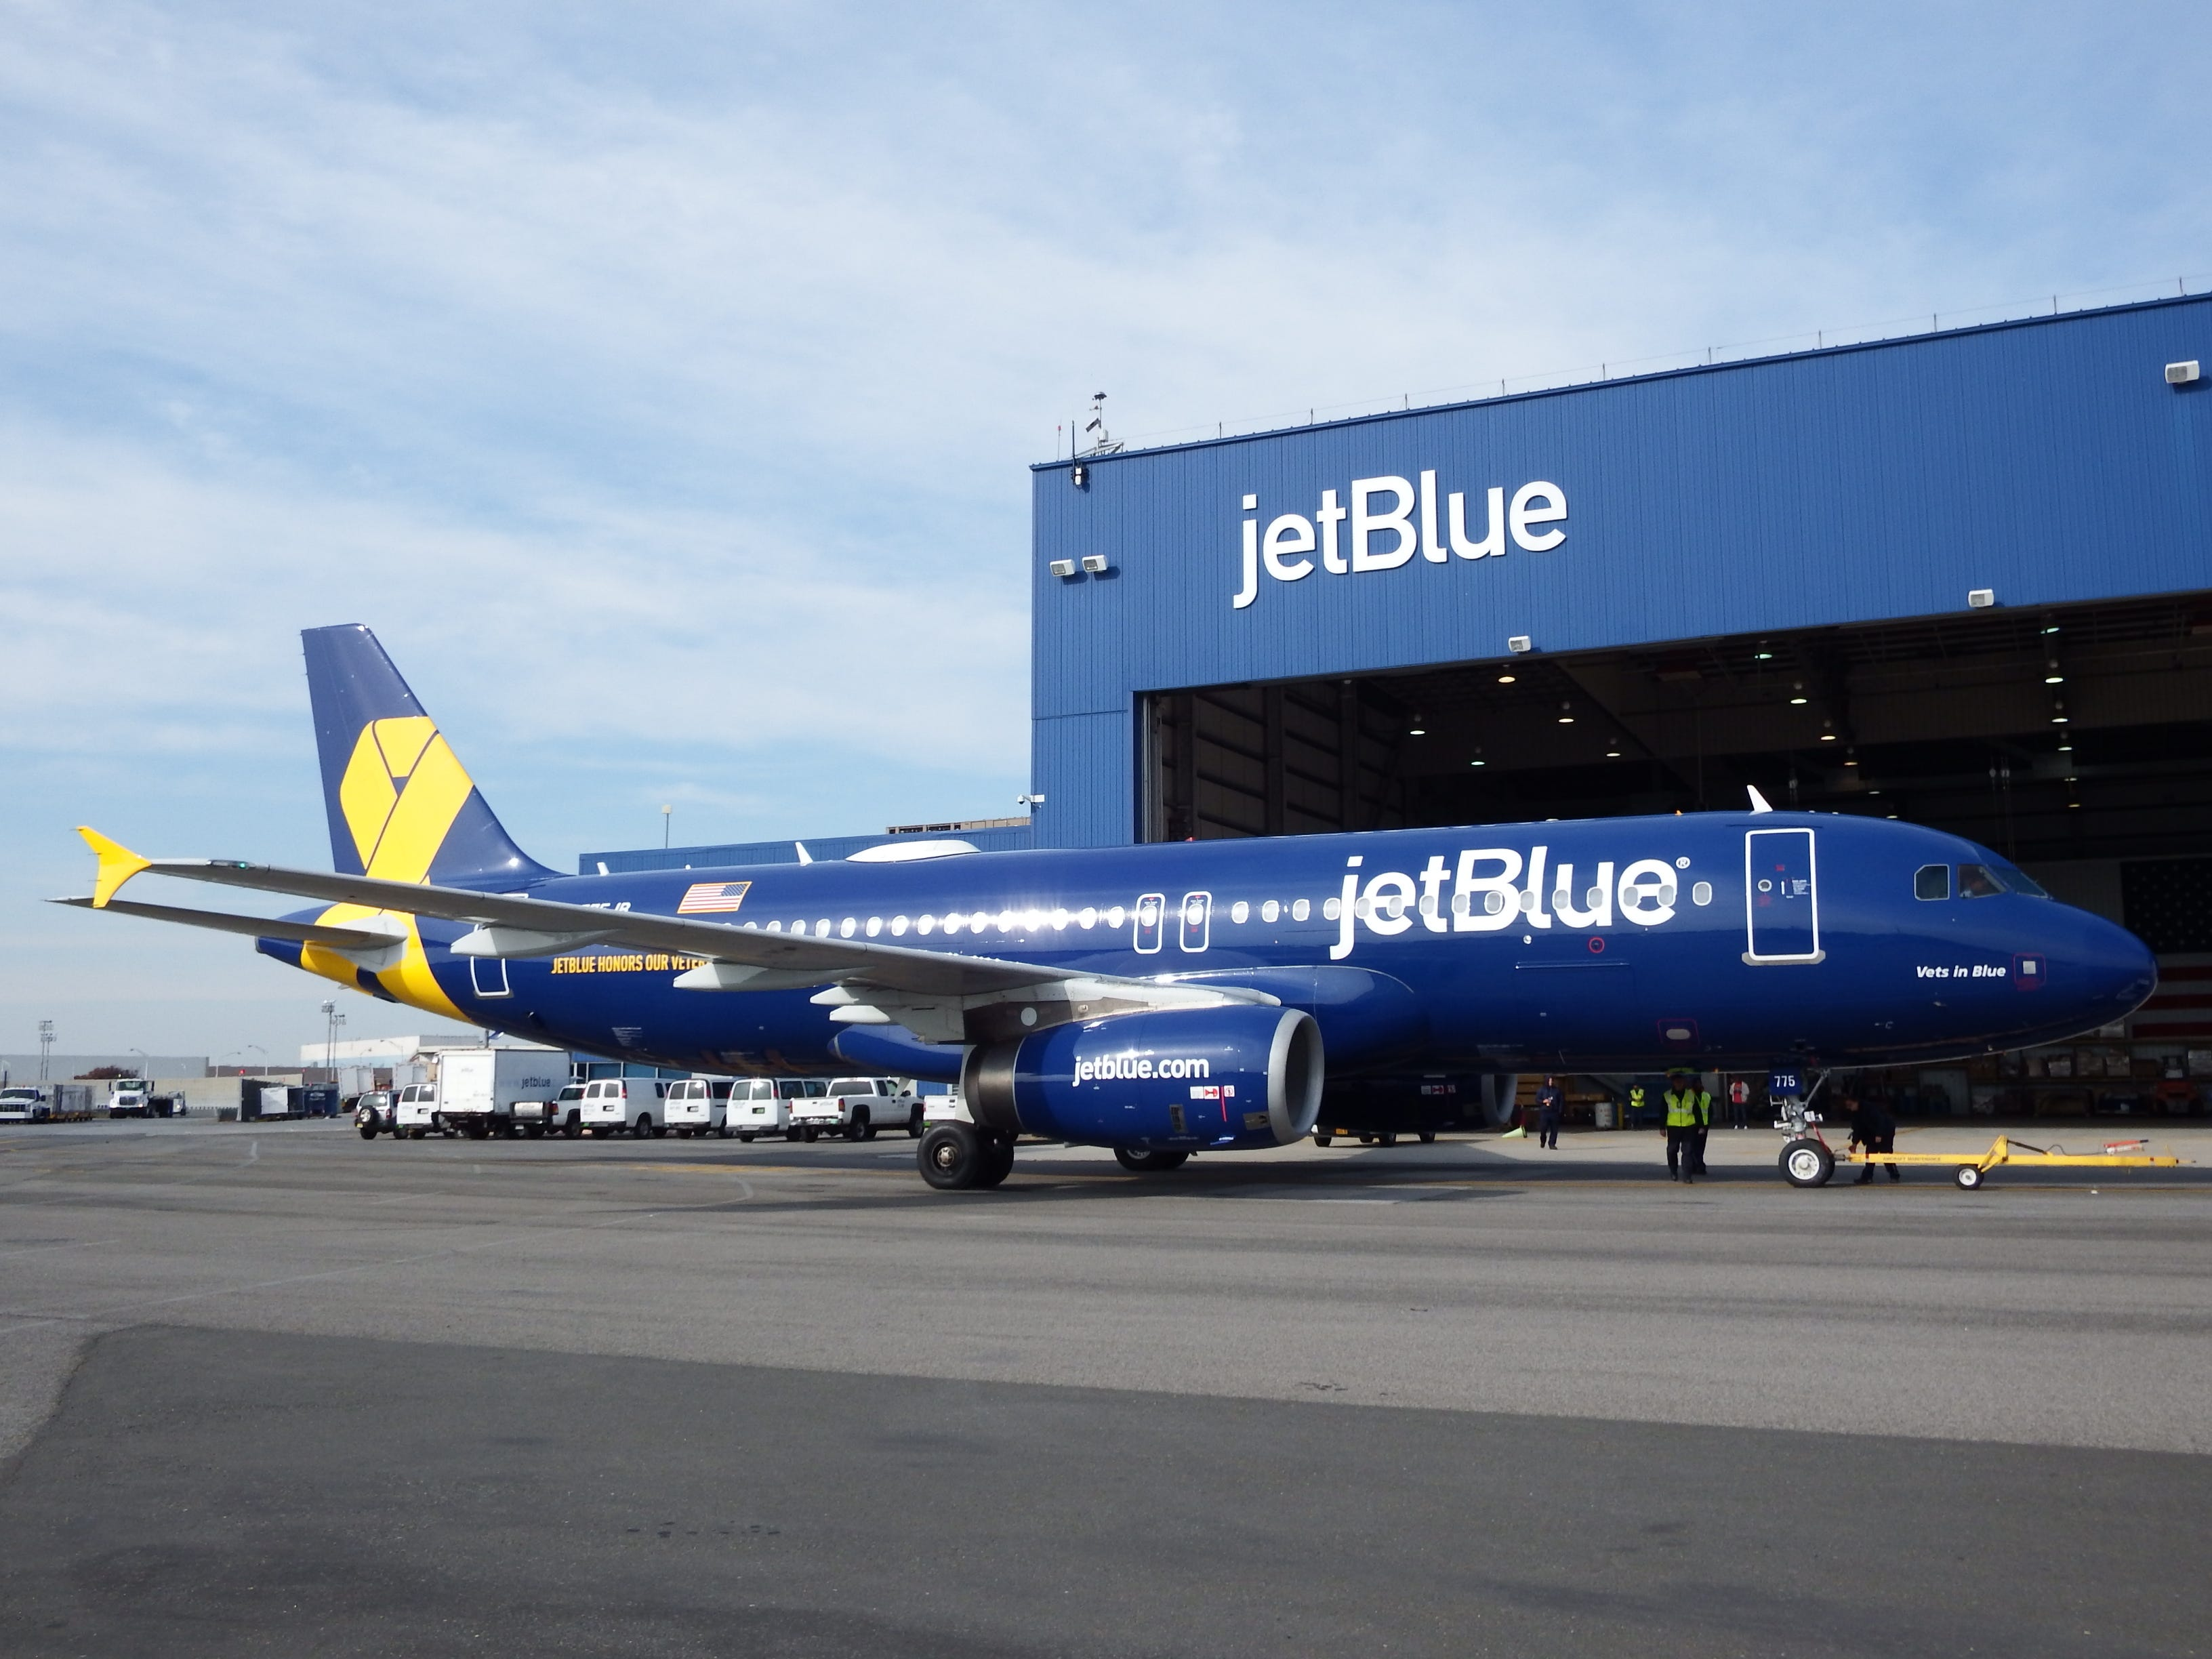 JetBlue to Begin Placing WiFi on All Aircraft | CheapAir